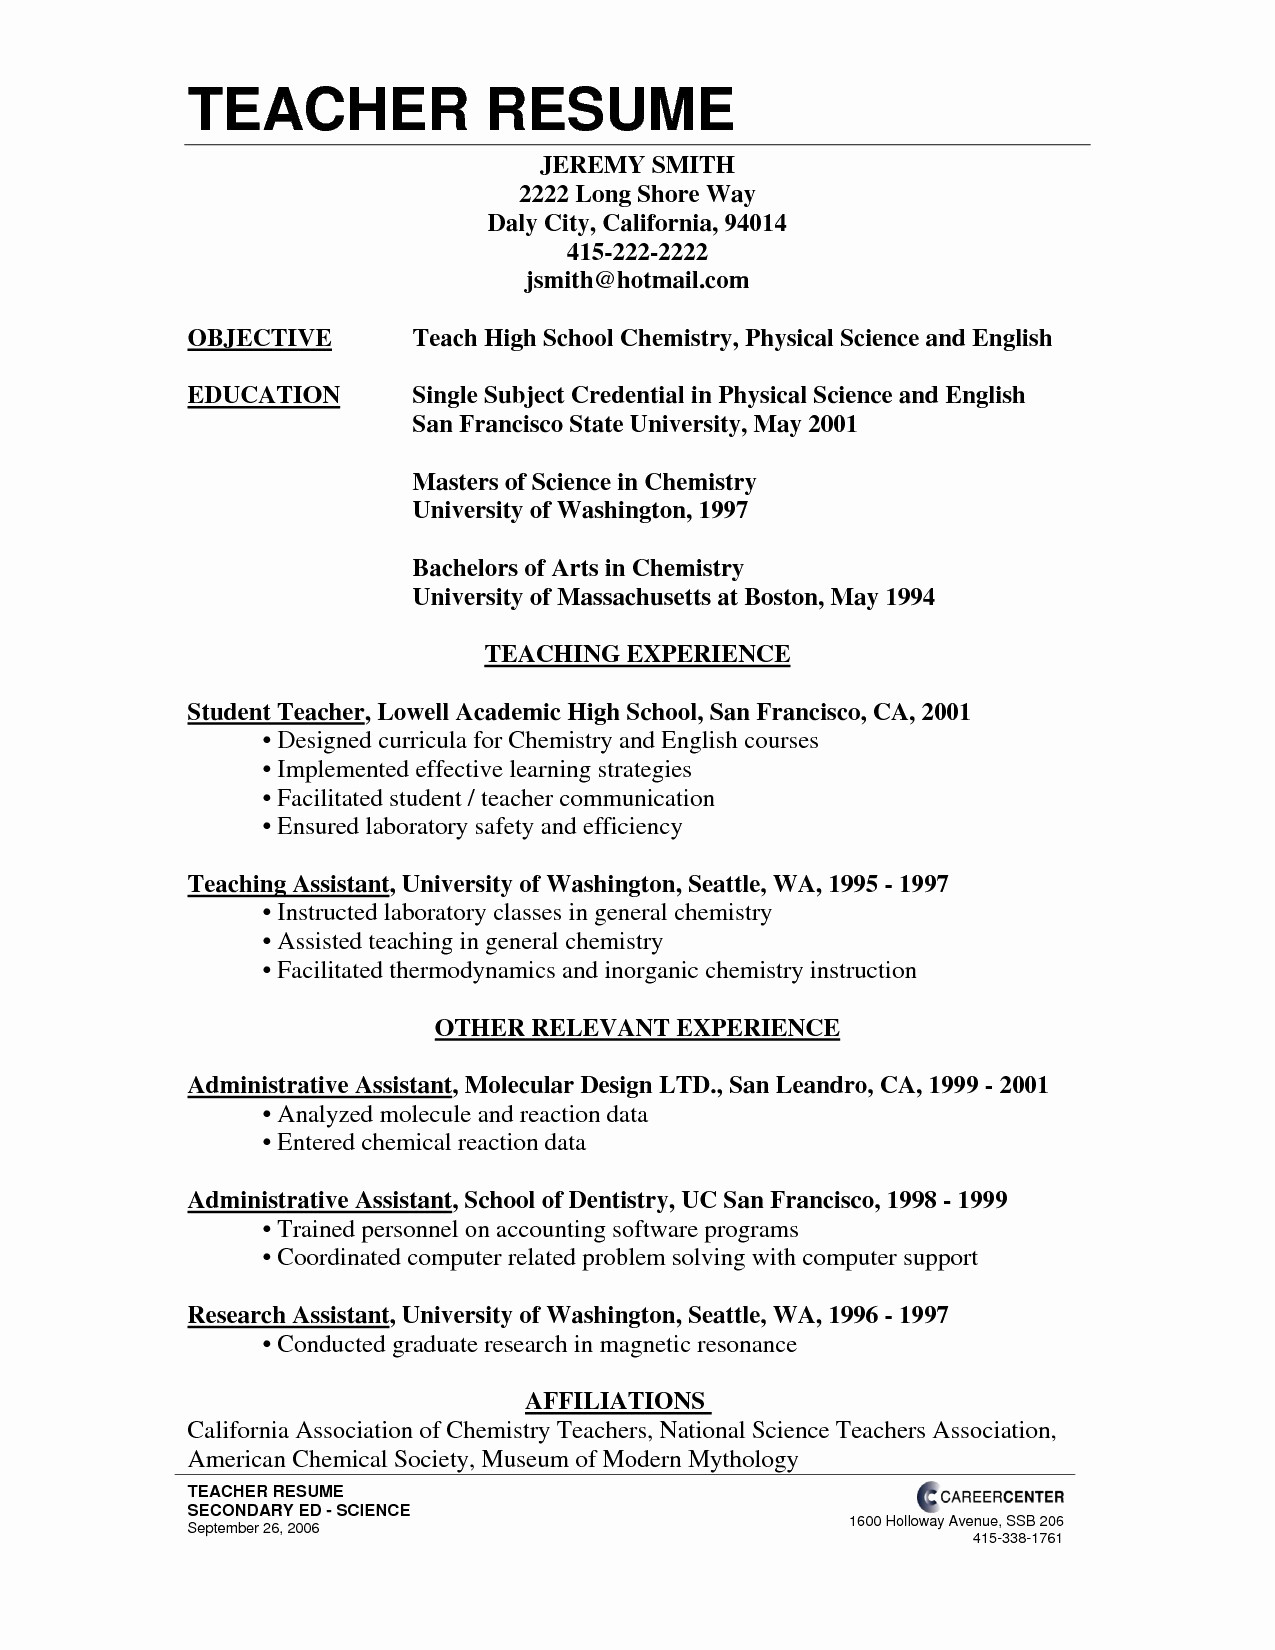 Employment Verification Letter Sample and Template - Cover Letter Examples for Resume Ideas